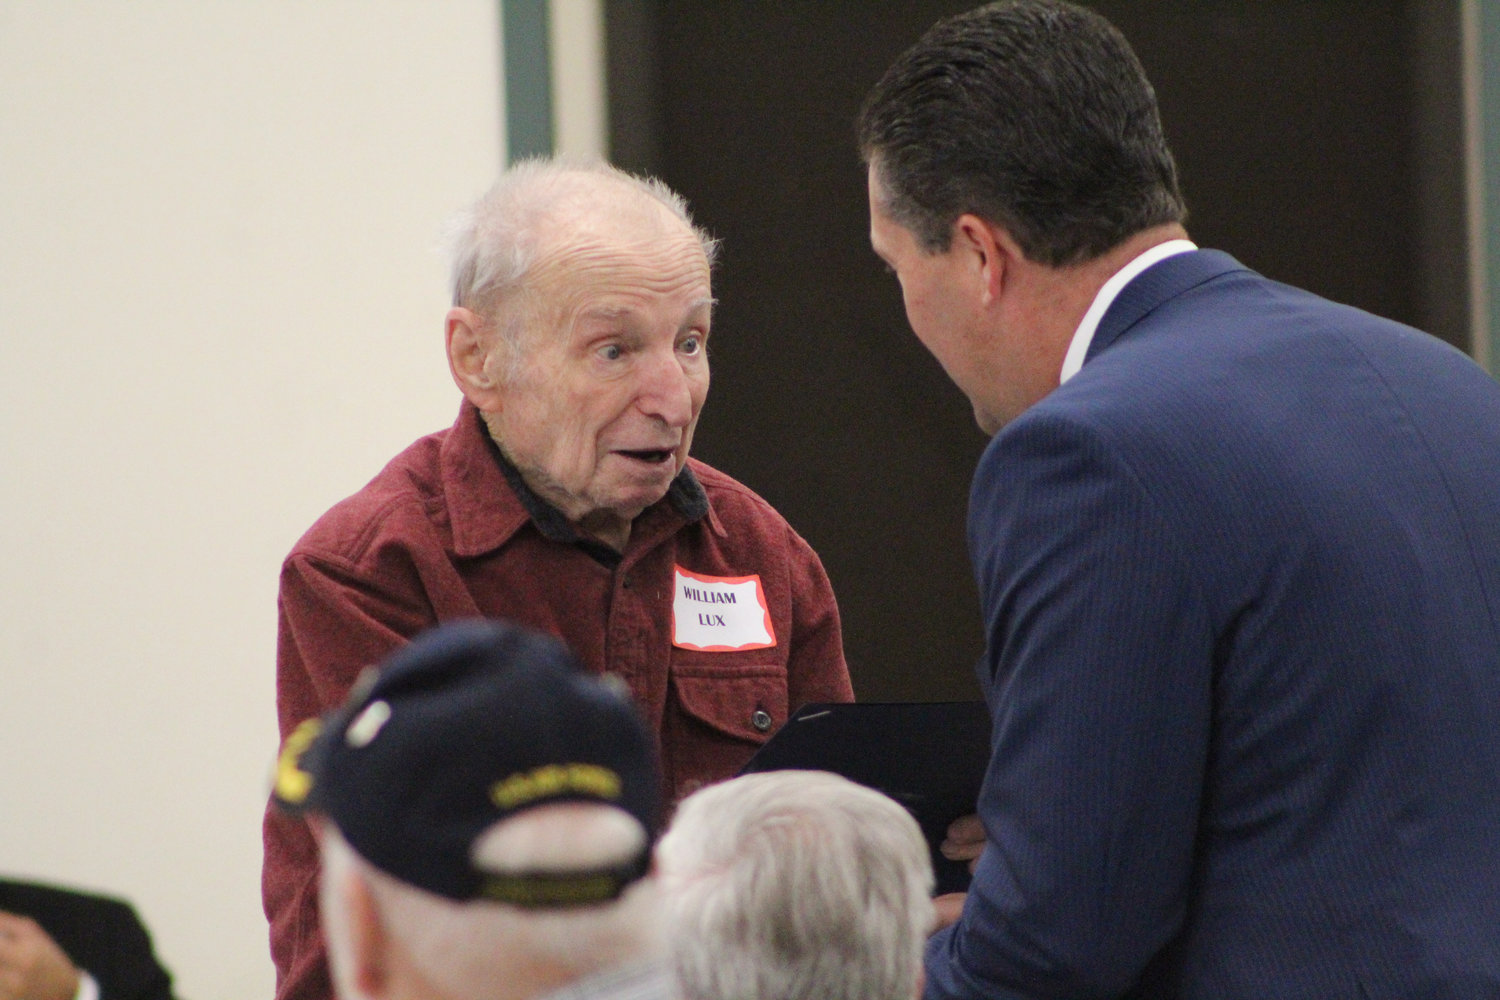 During Rep. Tom Mehaffie's Veterans Breakfast at the Lower Swatara Fire Hall Nov. 8 World War II veterans, including William Lux, were given citations.